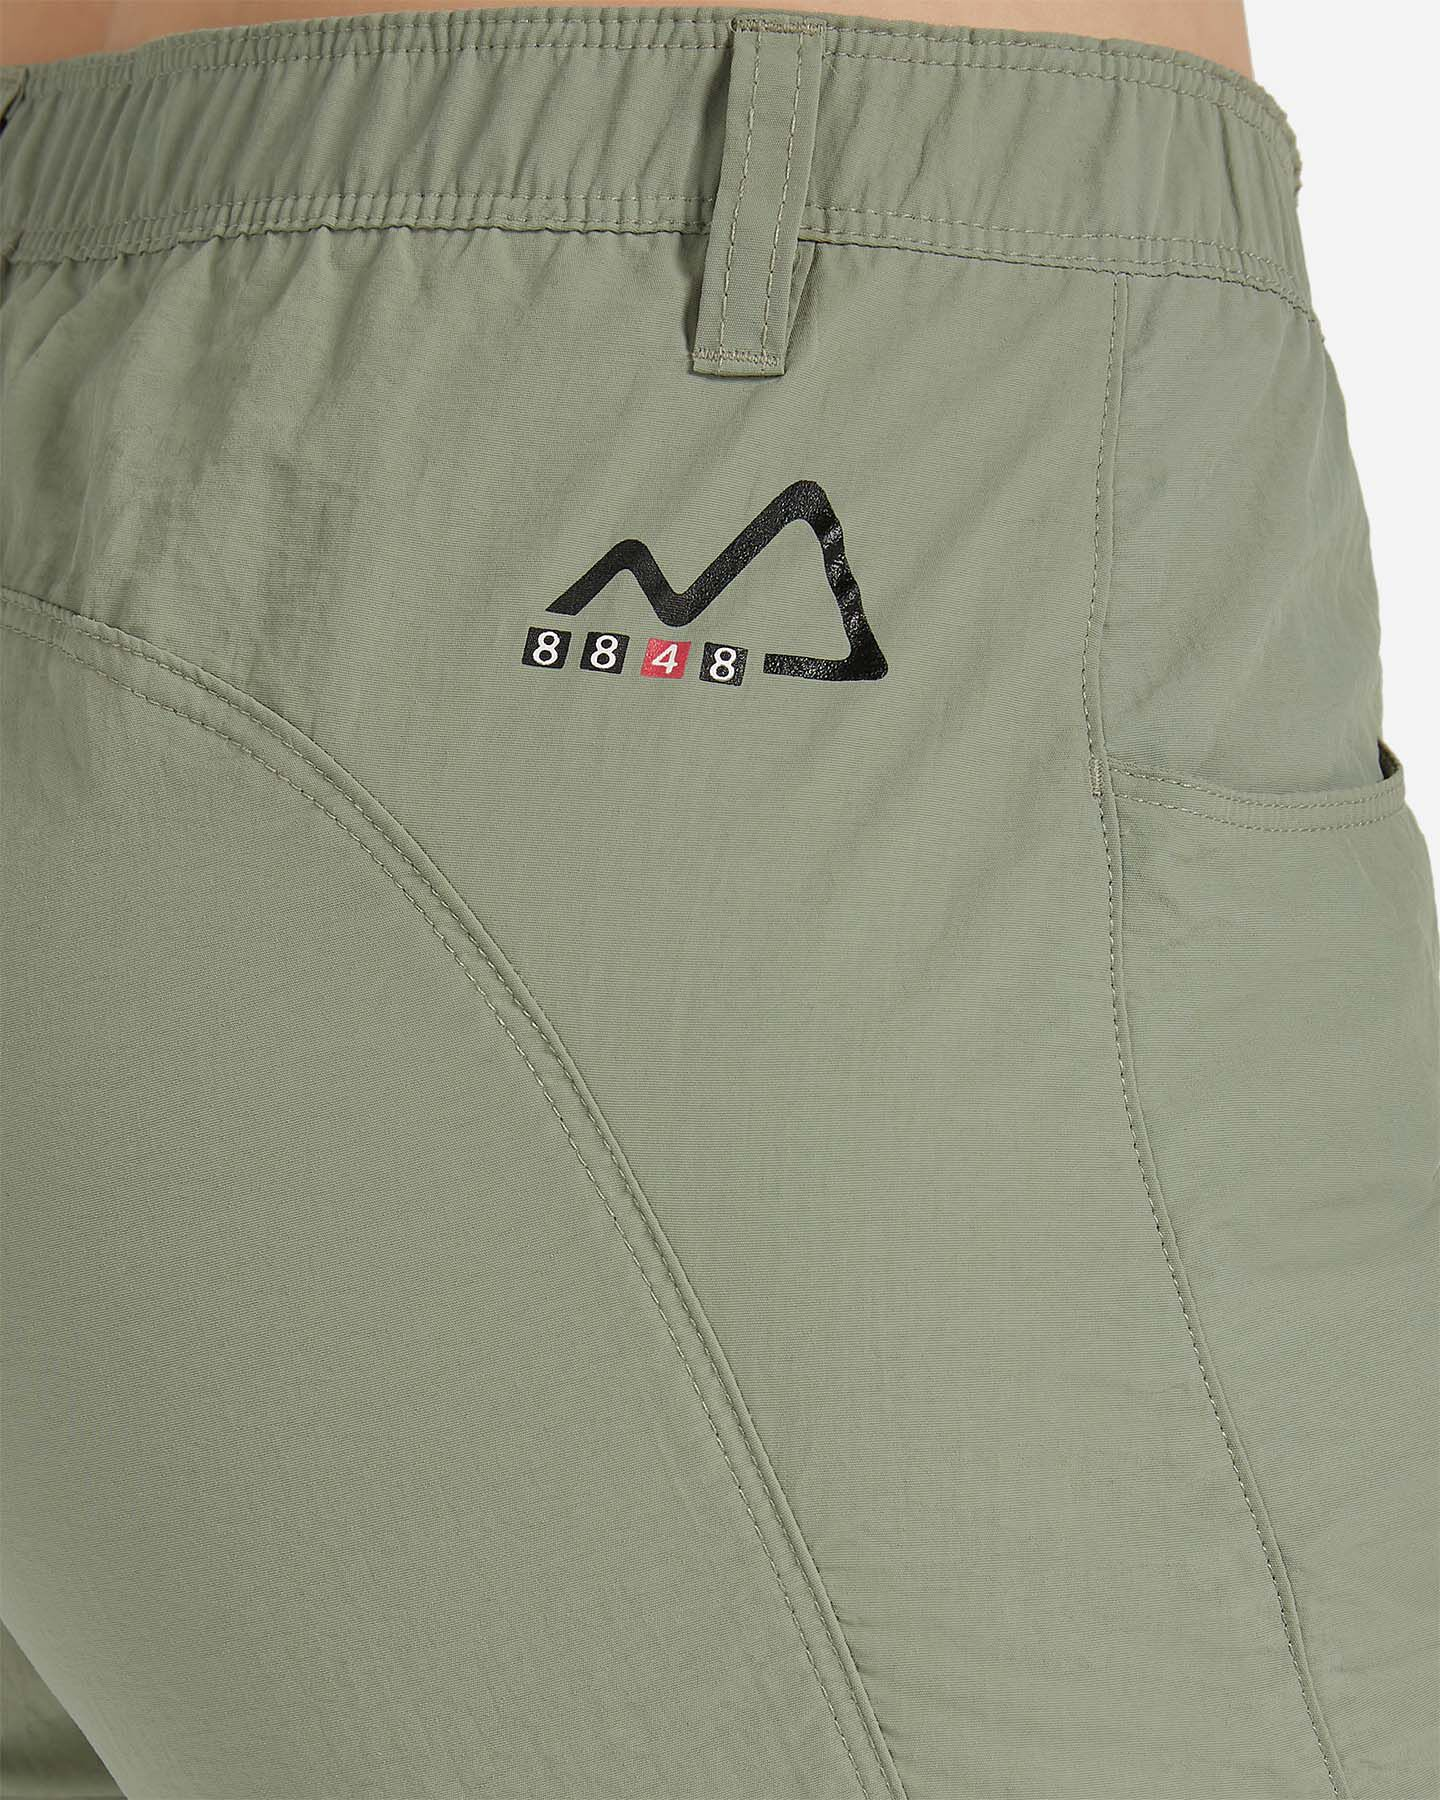 Pantalone outdoor 8848 TSL W S4060768 scatto 3